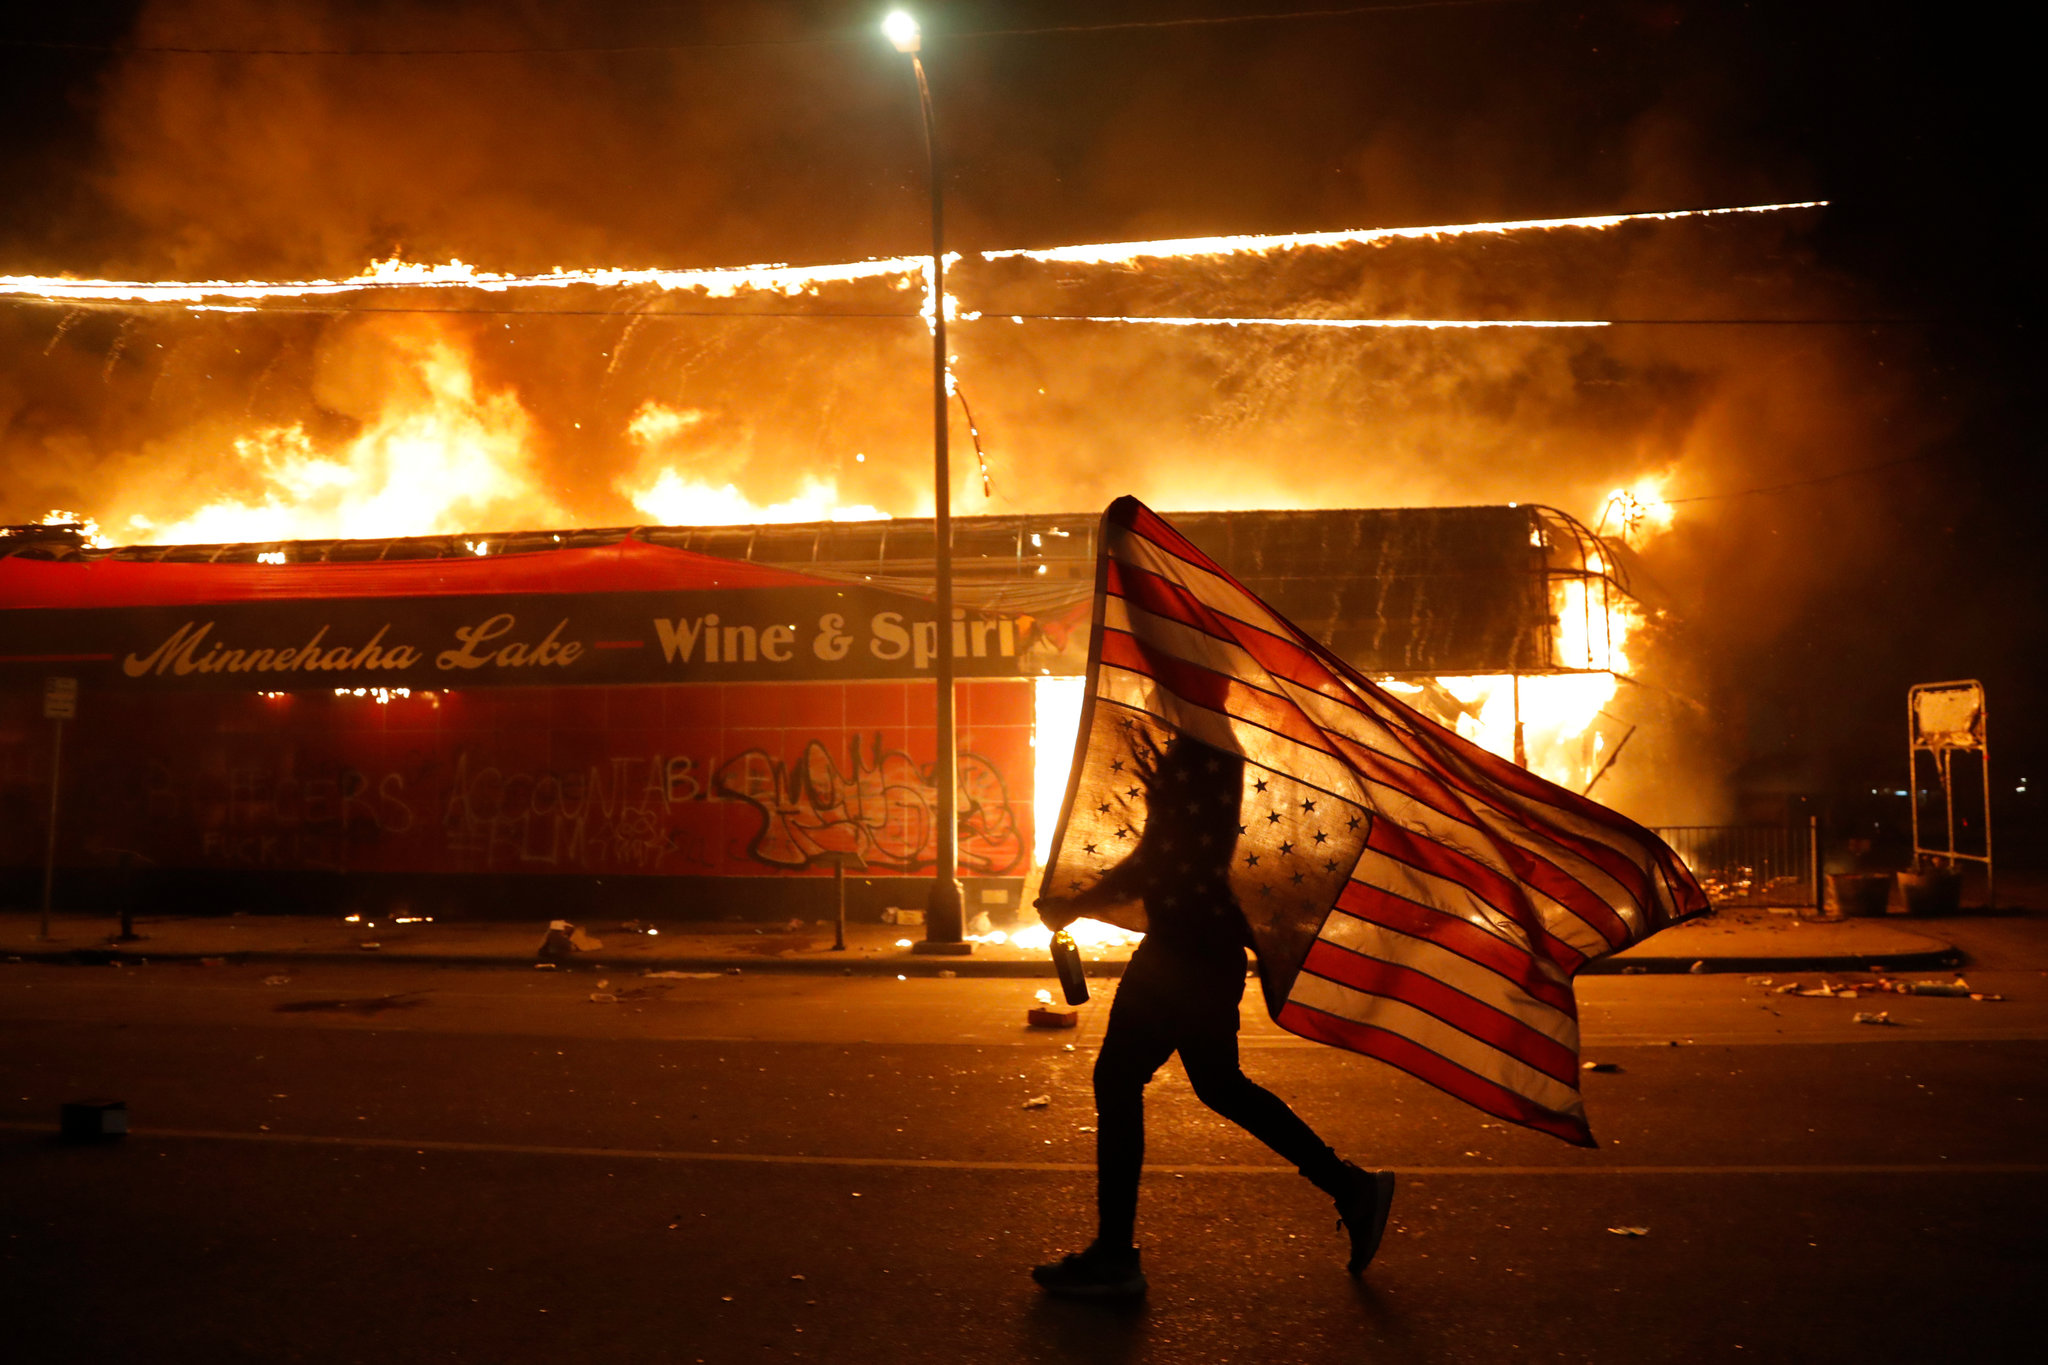 Opinion | The Case Against Riots - The New York Times